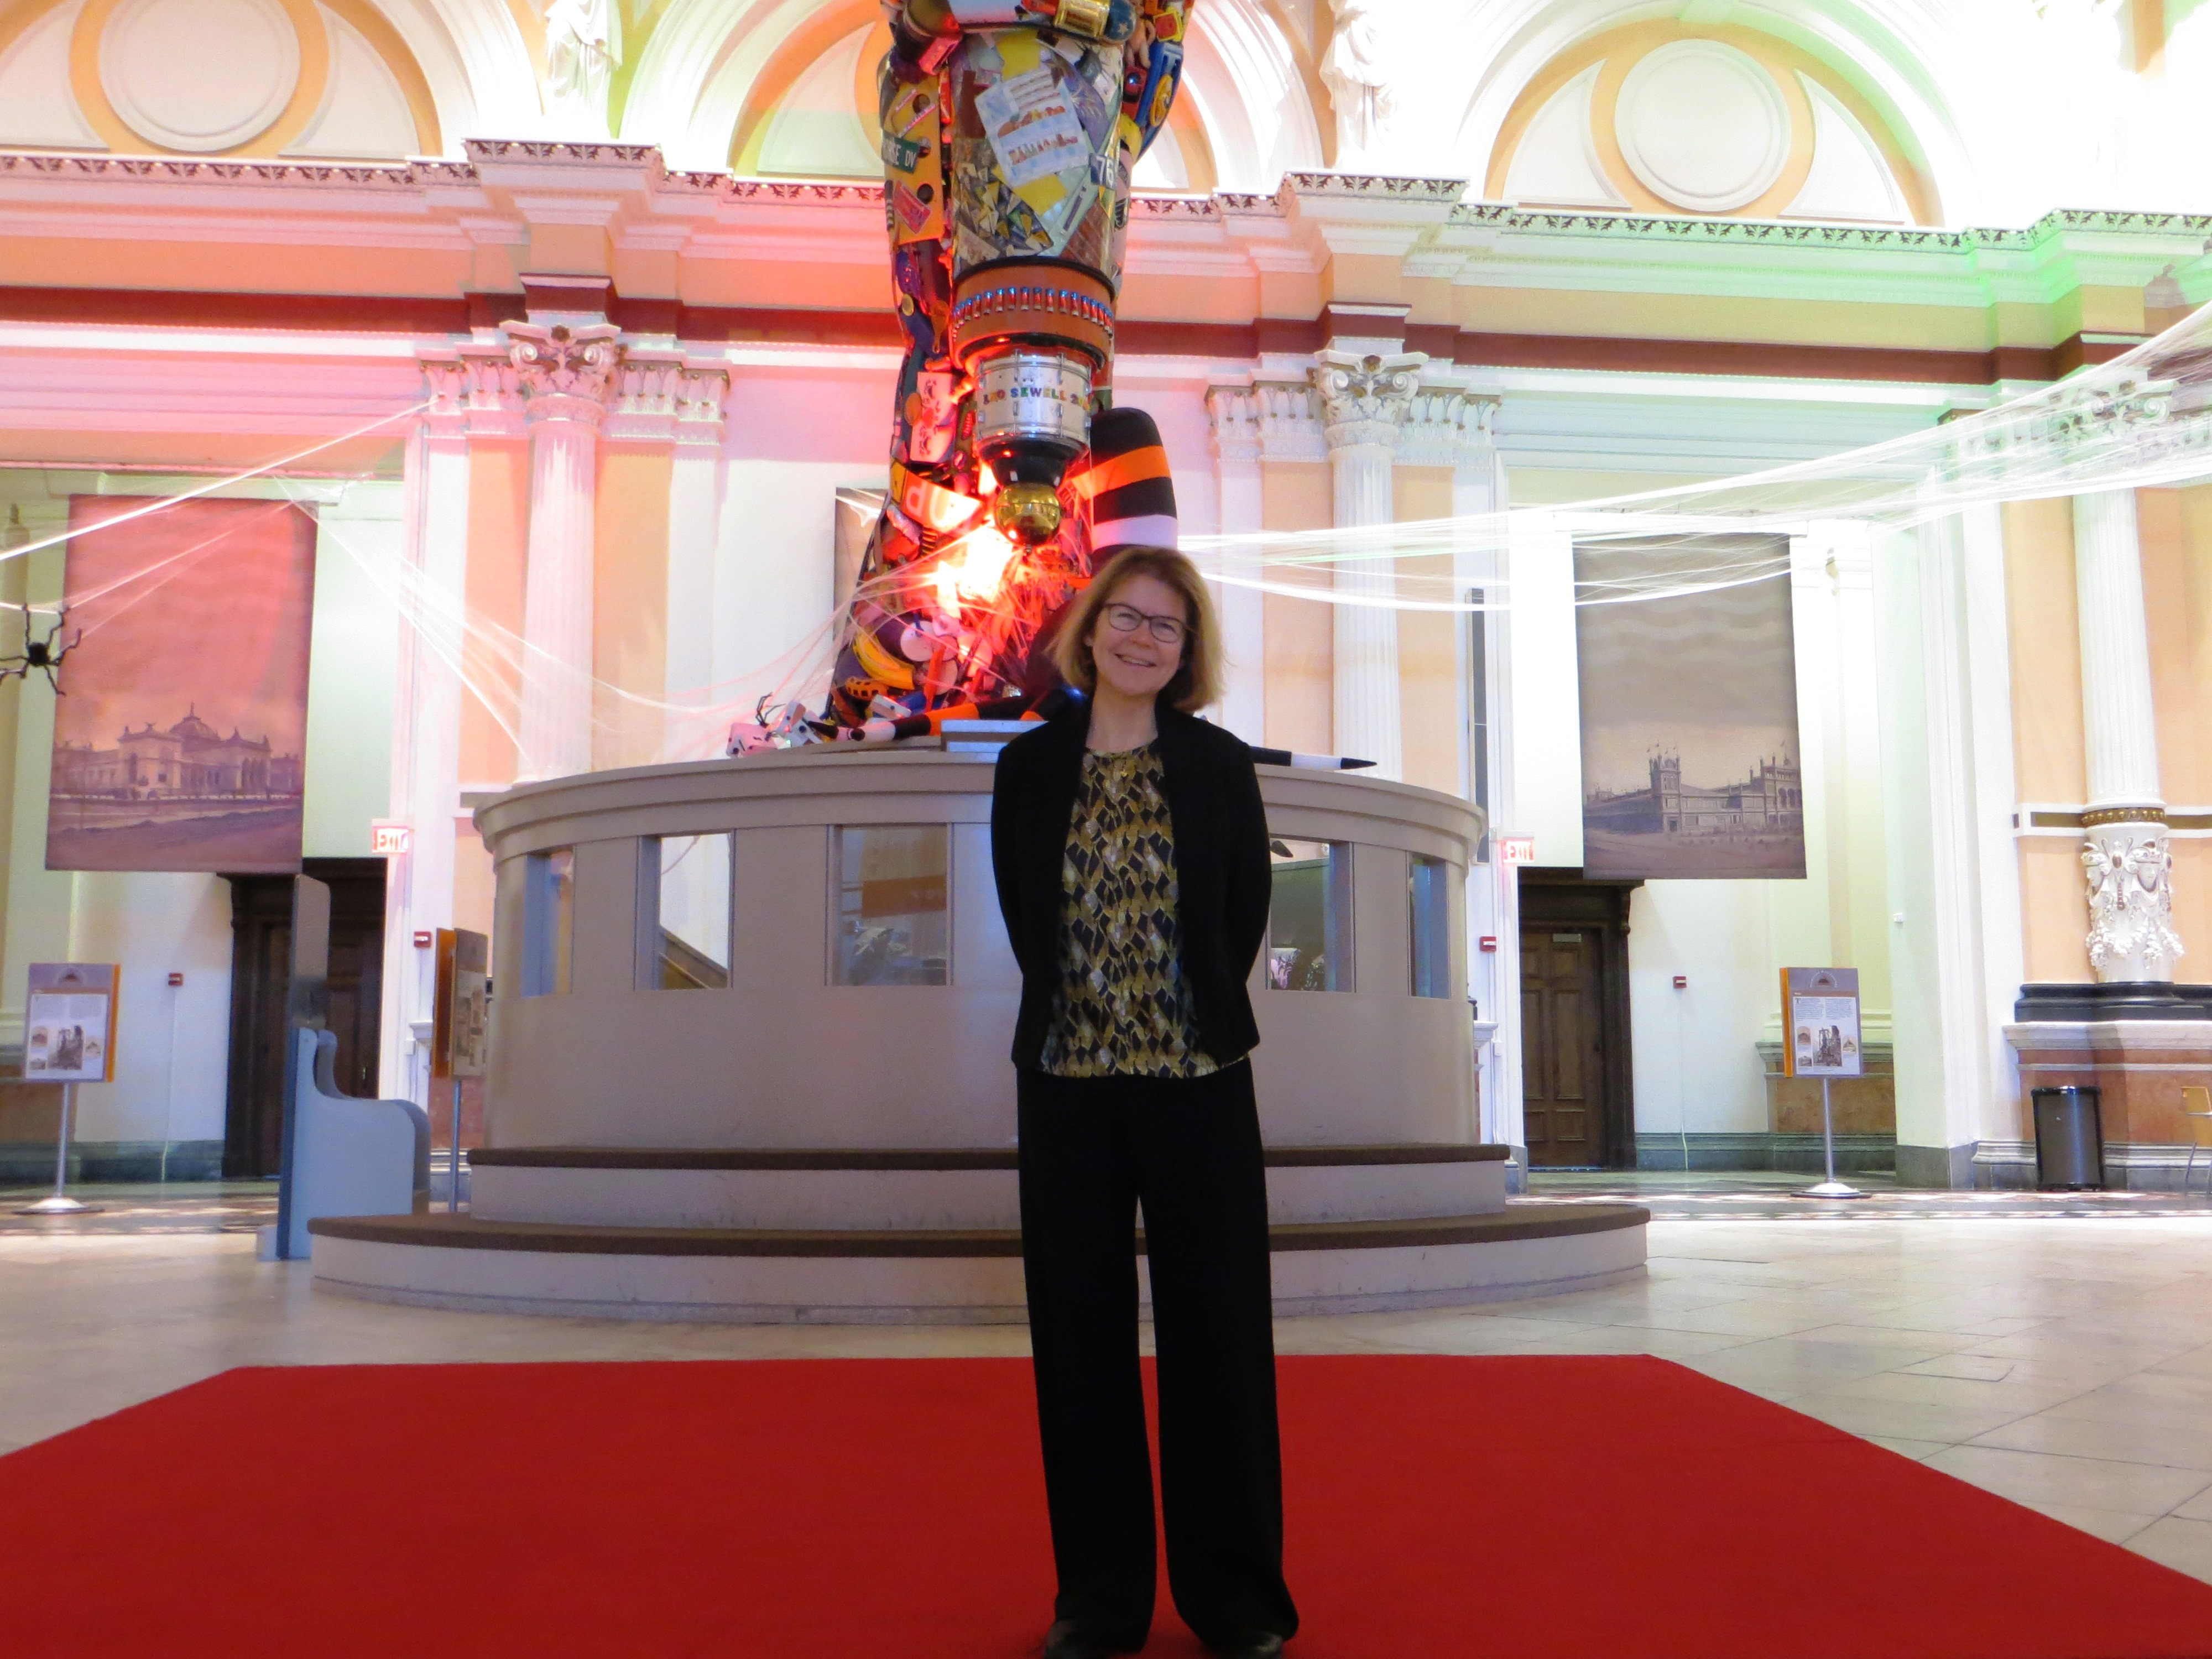 Lynn McMaster, president and CEO of the Please Touch Museum, in the rotunda of the museum.